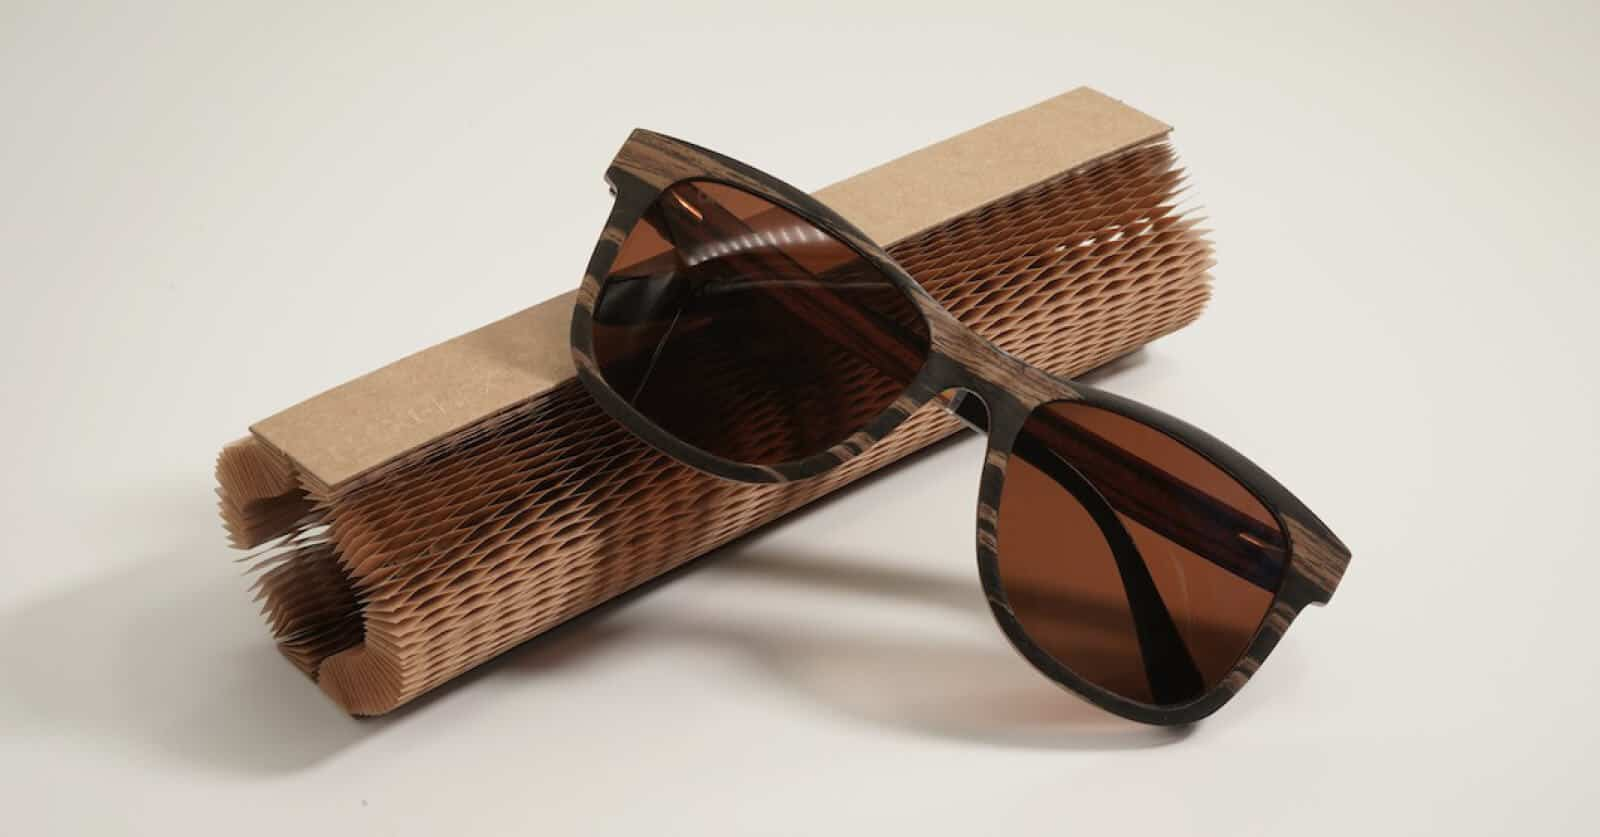 Bird Eyewear use Flexi-Hex Air paper packaging to protect sustainable sunglasses